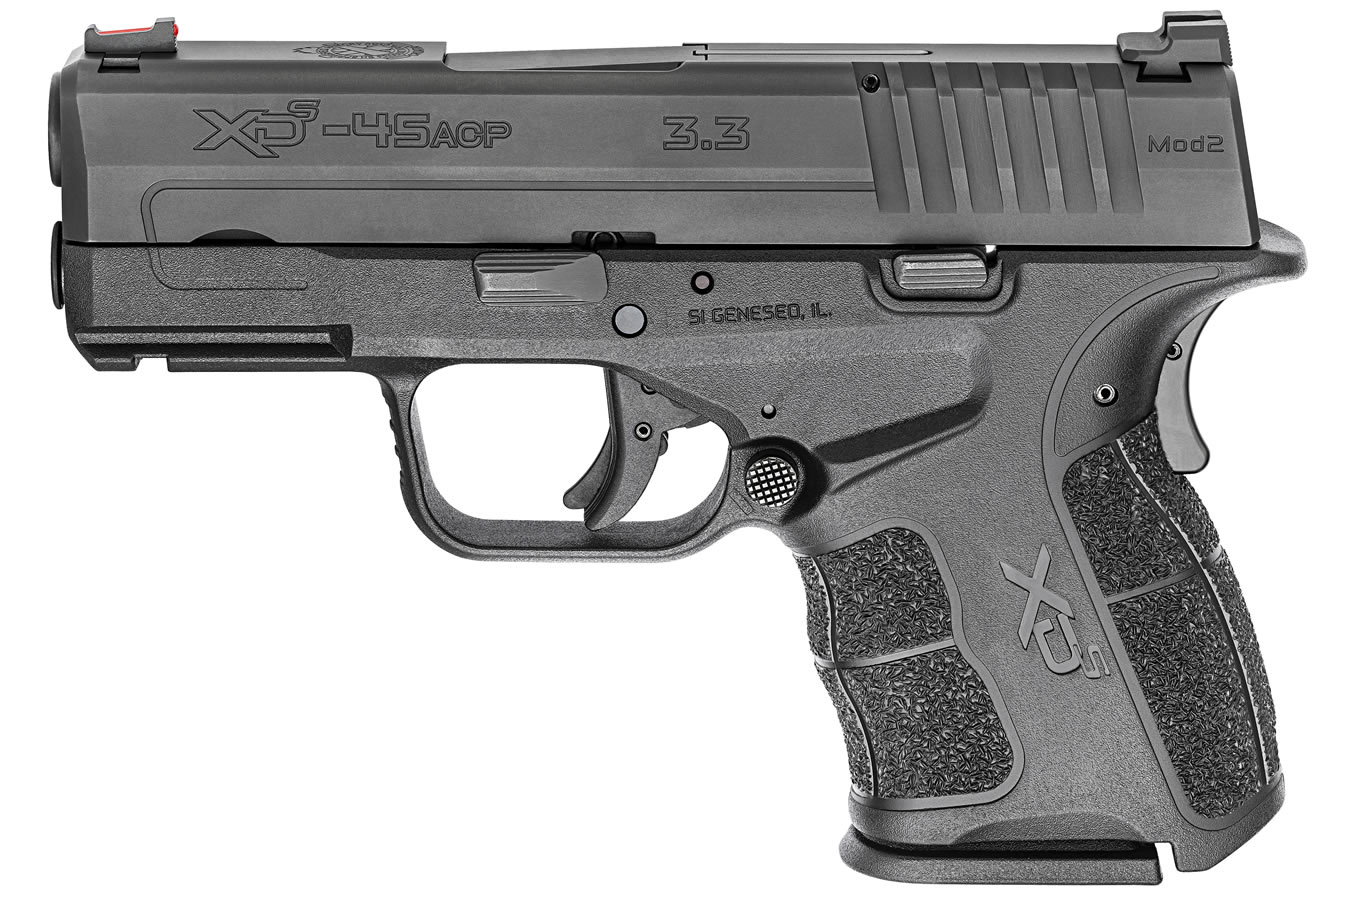 XDS Mod 2 3 3 Single Stack 45 ACP Gear Up Package with 5 Magazines and  Range Bag